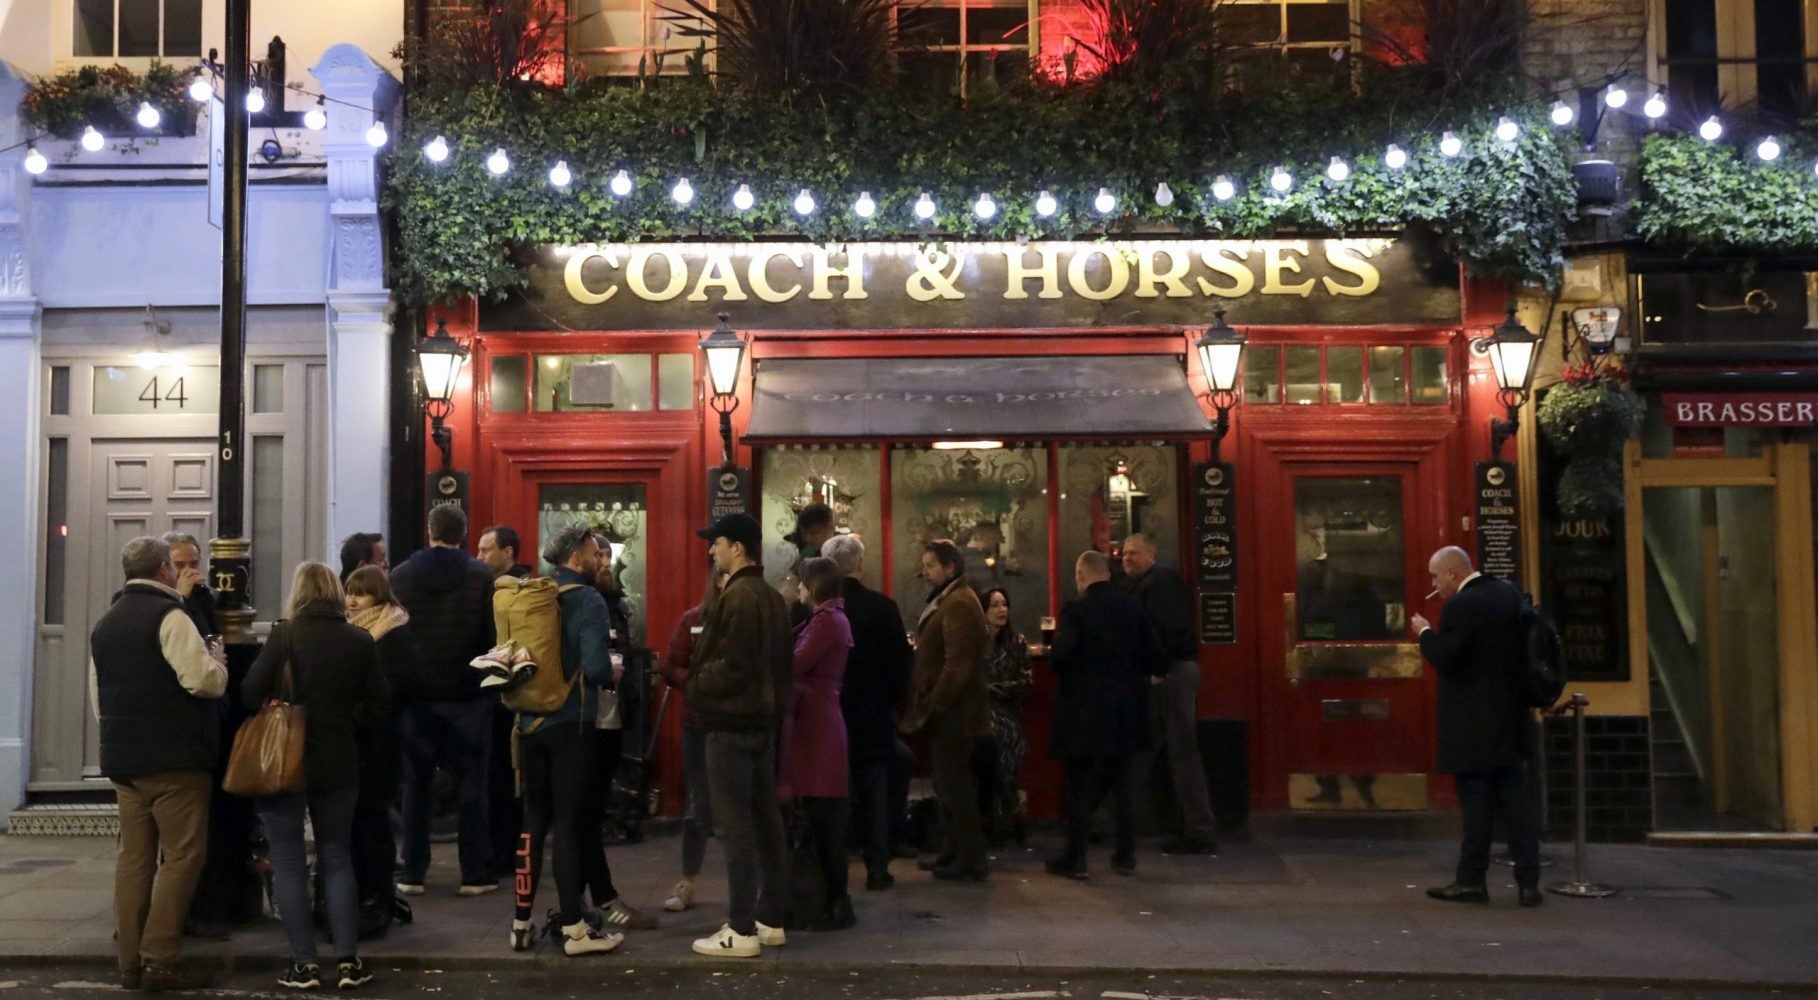 Coronavirus: 'London pubs are packed' despite government's plea for social distancing